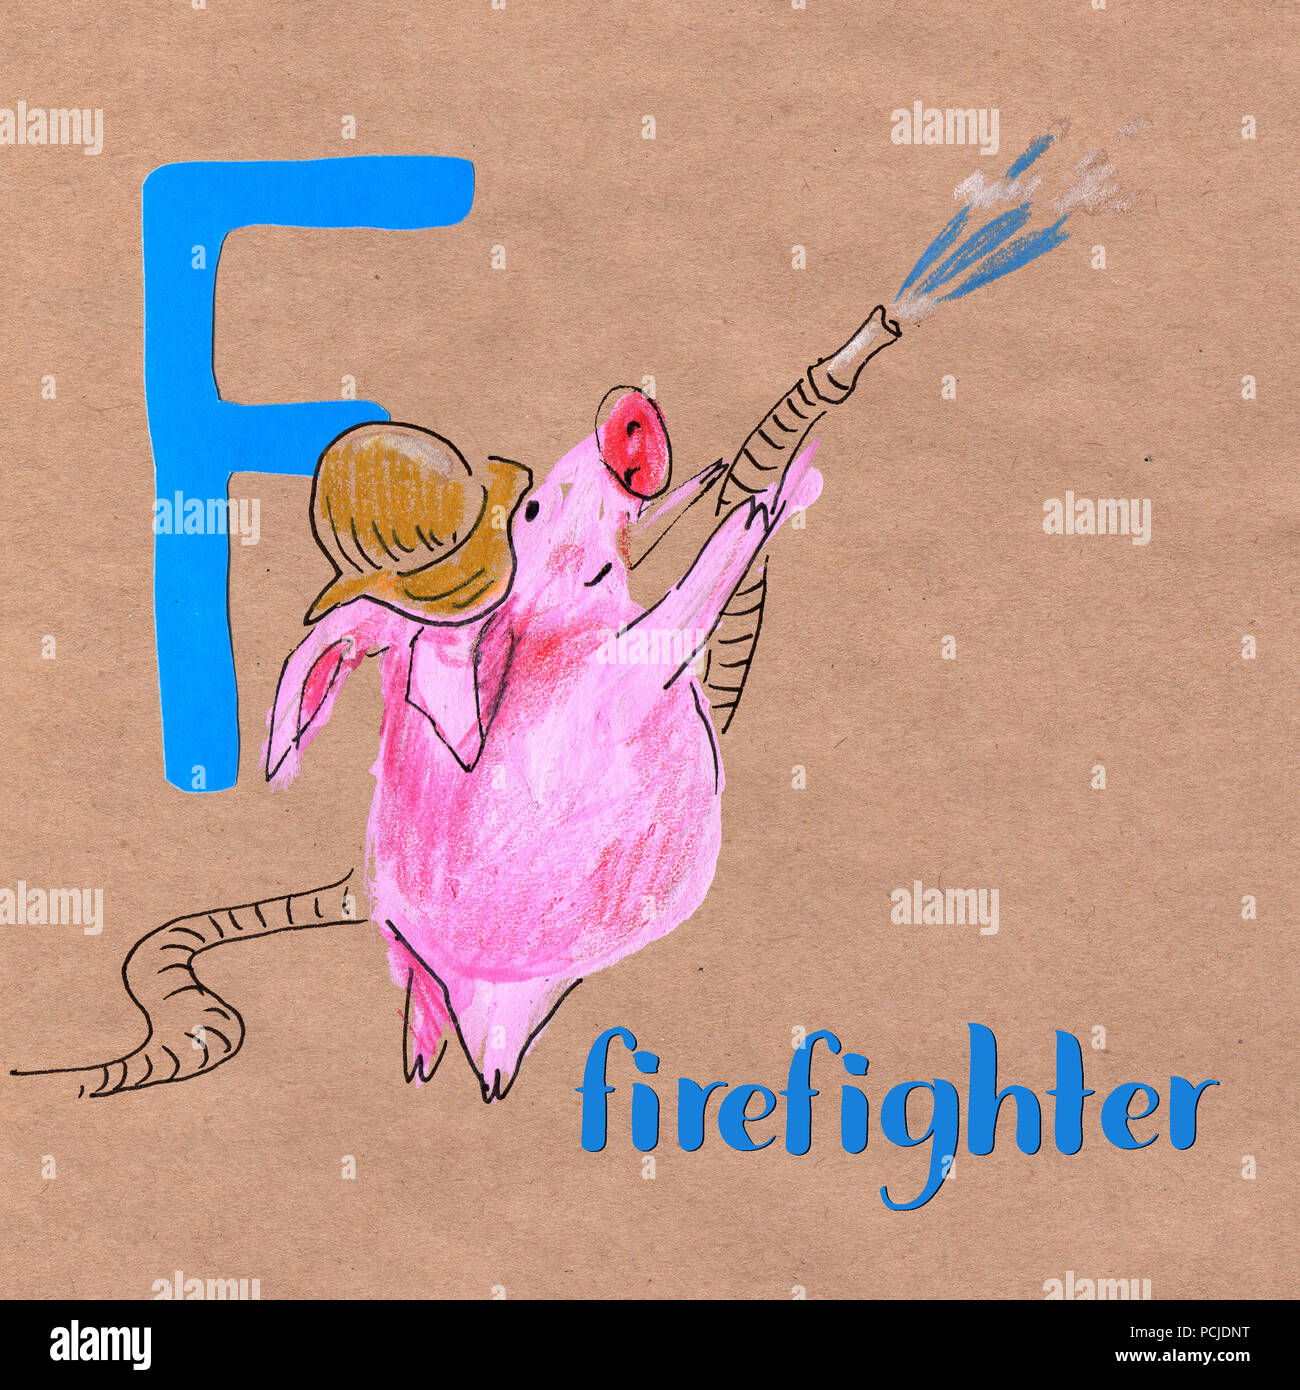 Cartoon Letter F Stock Photos & Cartoon Letter F Stock Images - Alamy